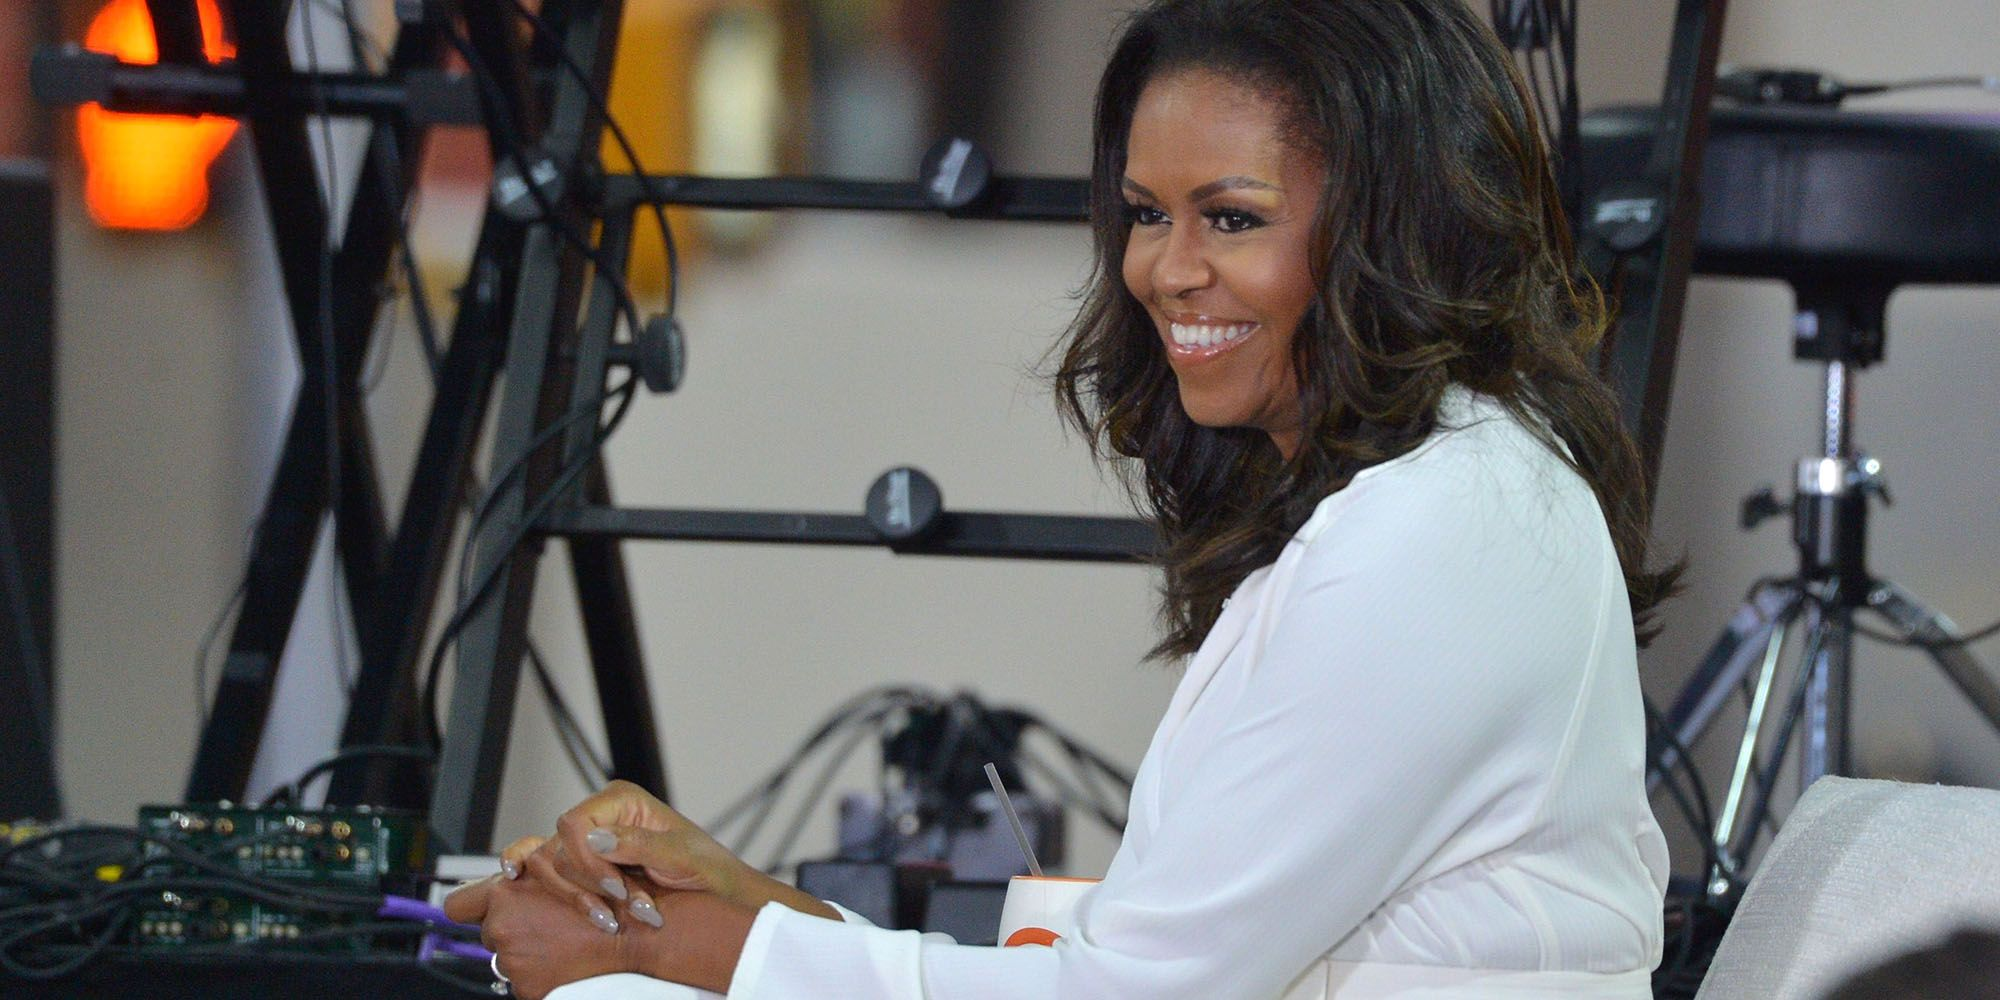 Michelle Obama Has the Perfect Response to the Backlash Against the #MeToo Movement